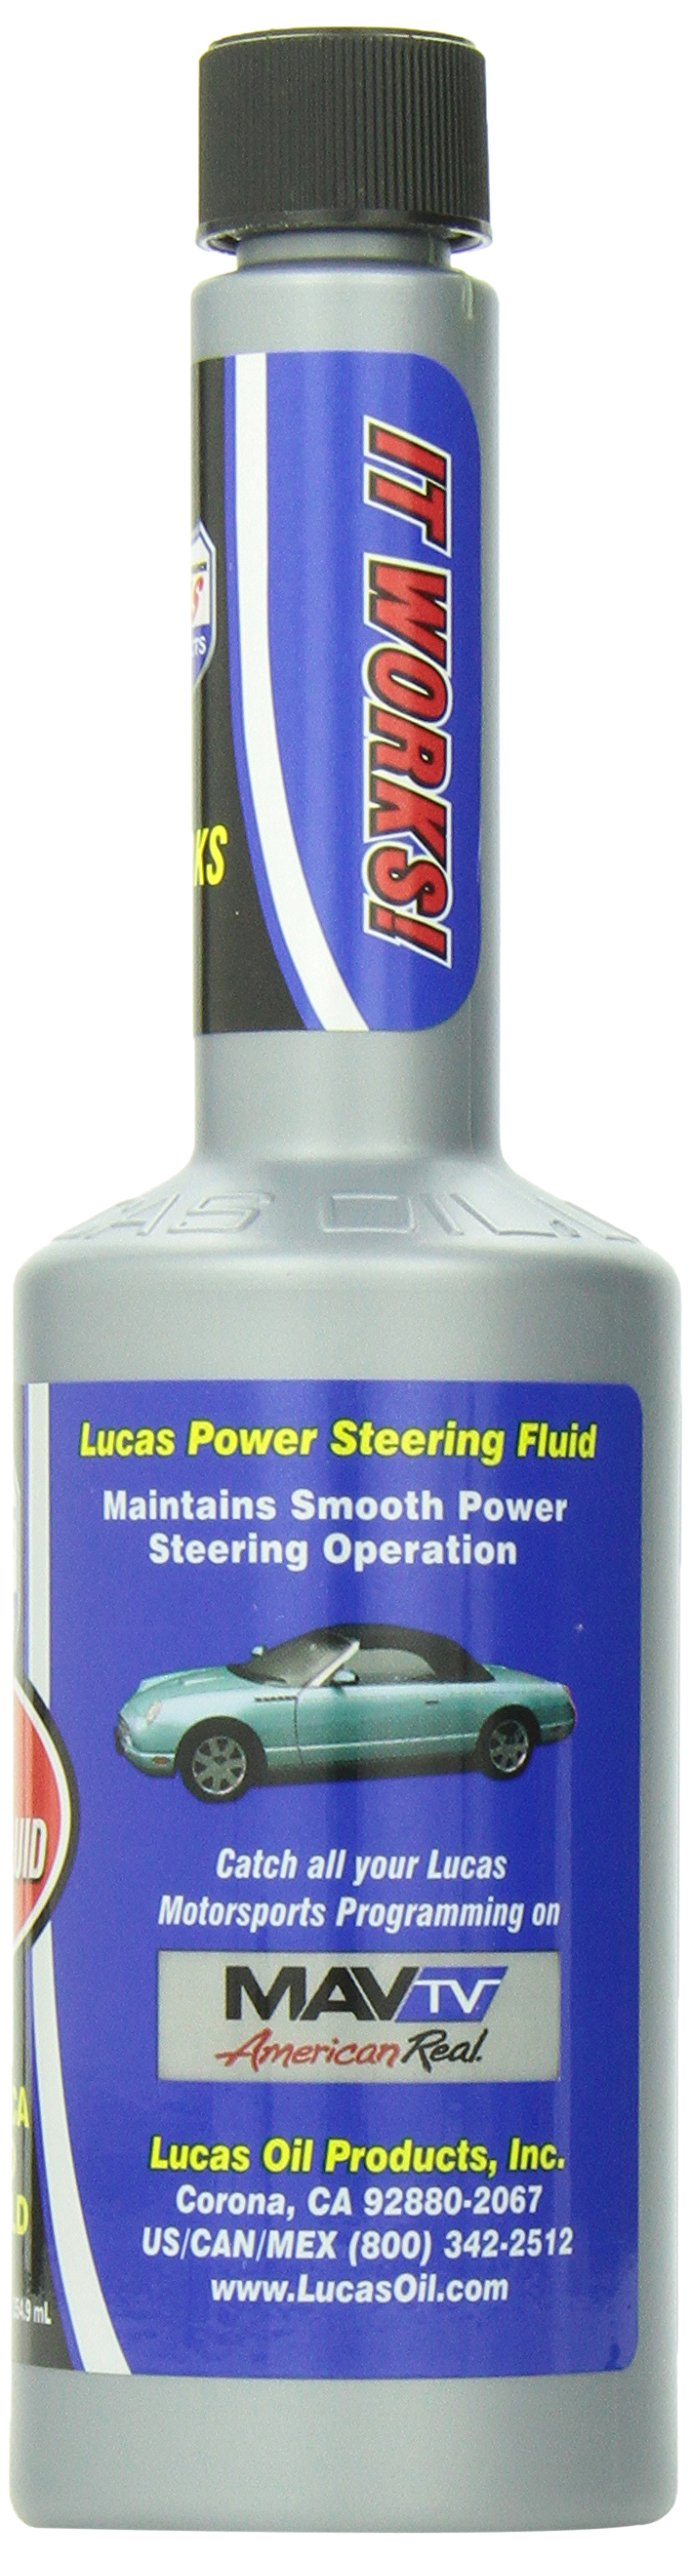 Lucas Oil 10823-12 Power Steering Fluid, 12 oz, (Case of 12)